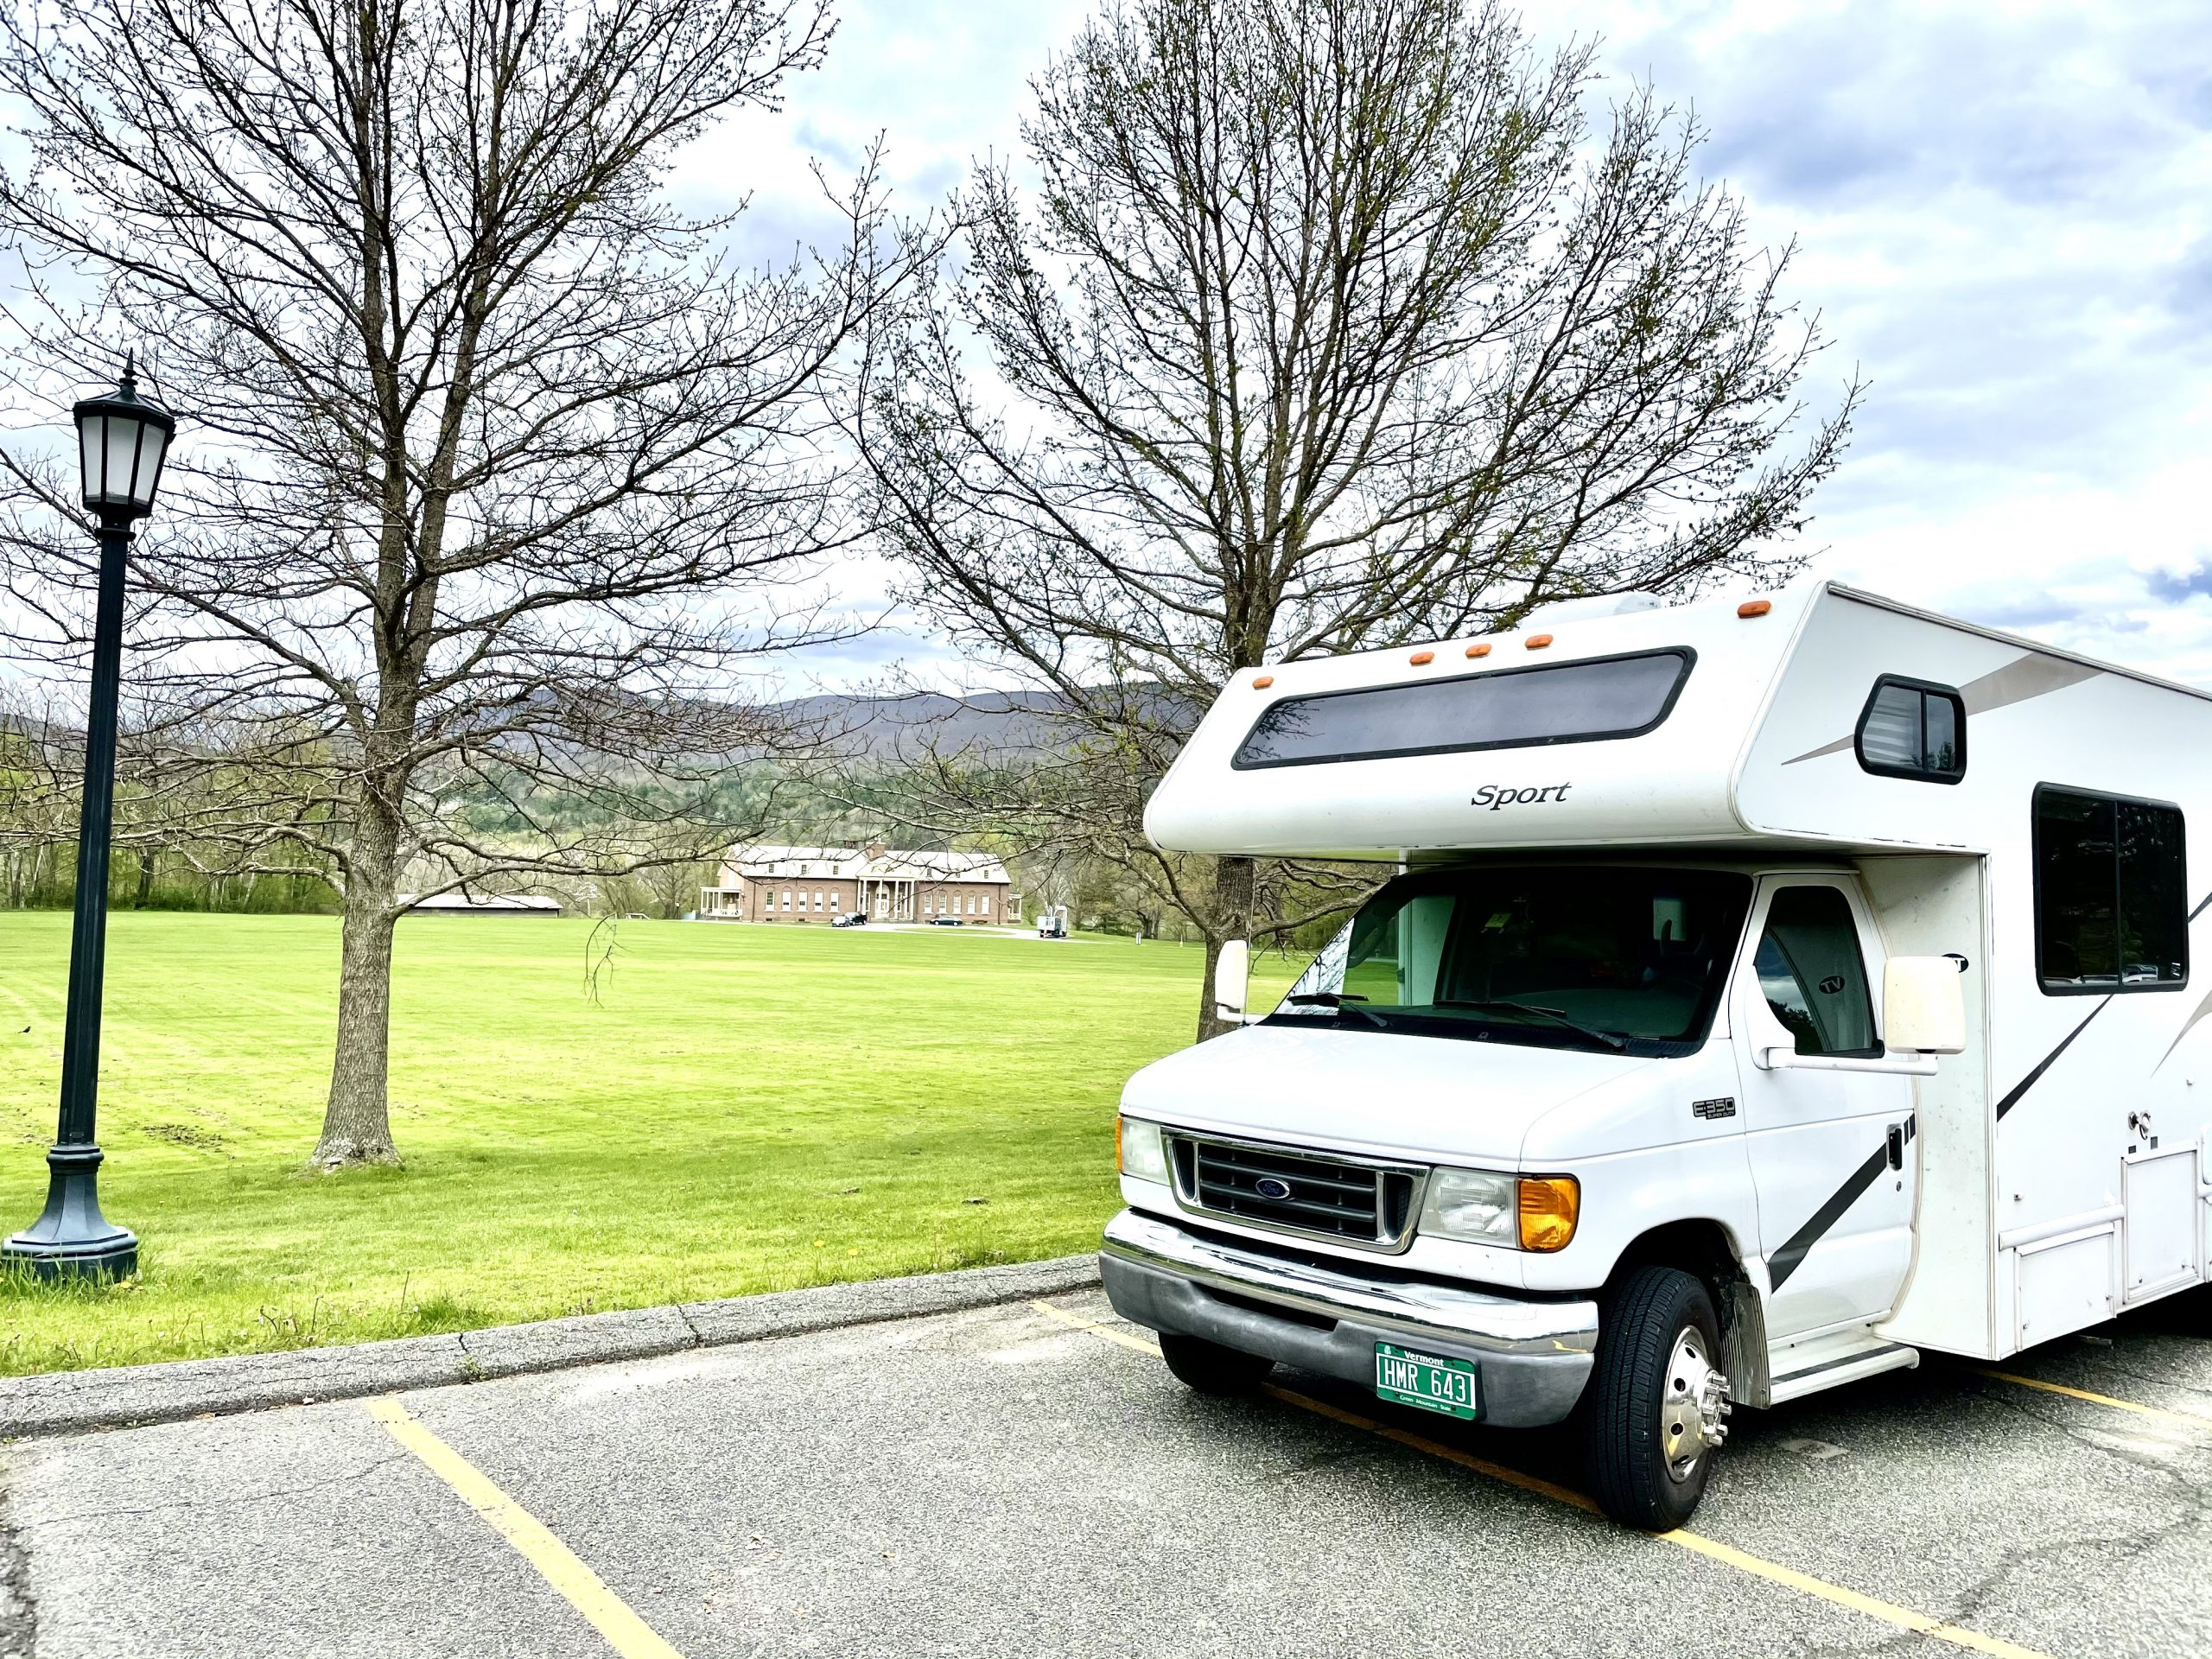 photo of an RV parked next to a field with a lamp post on the left